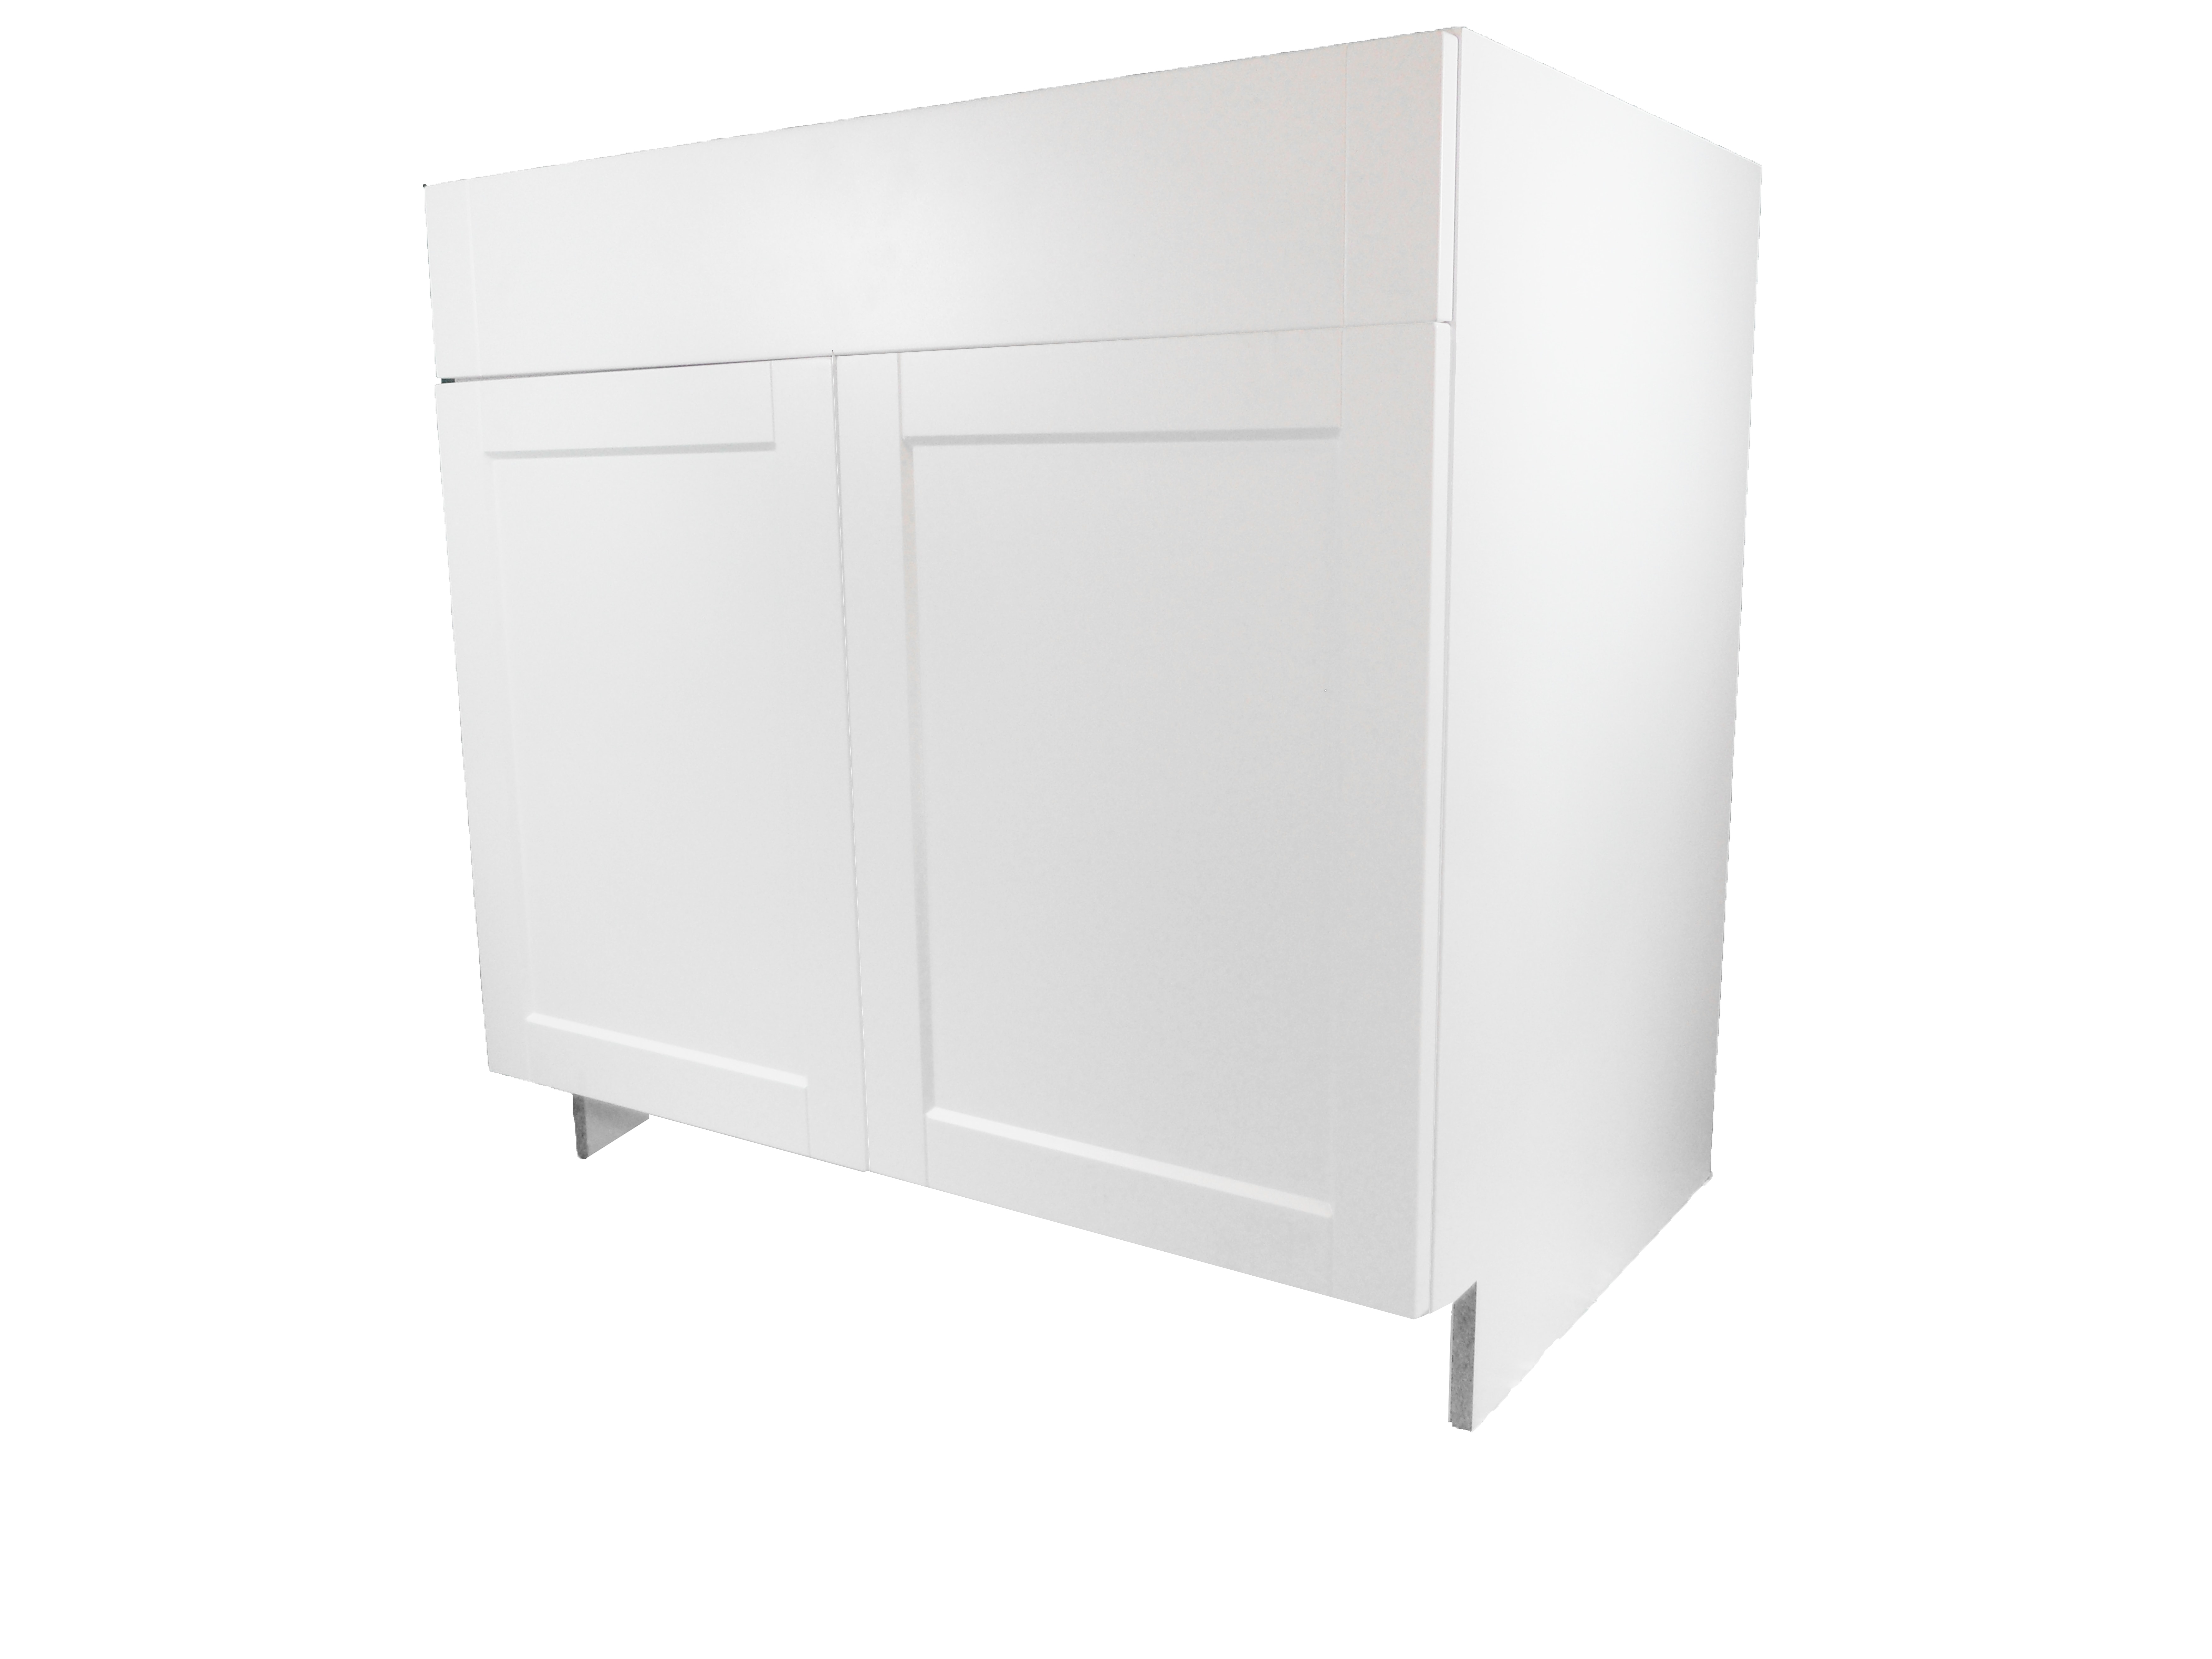 Sink Base Cabinet with 2 Door / Flat Panel White / 36 Solaire White 0